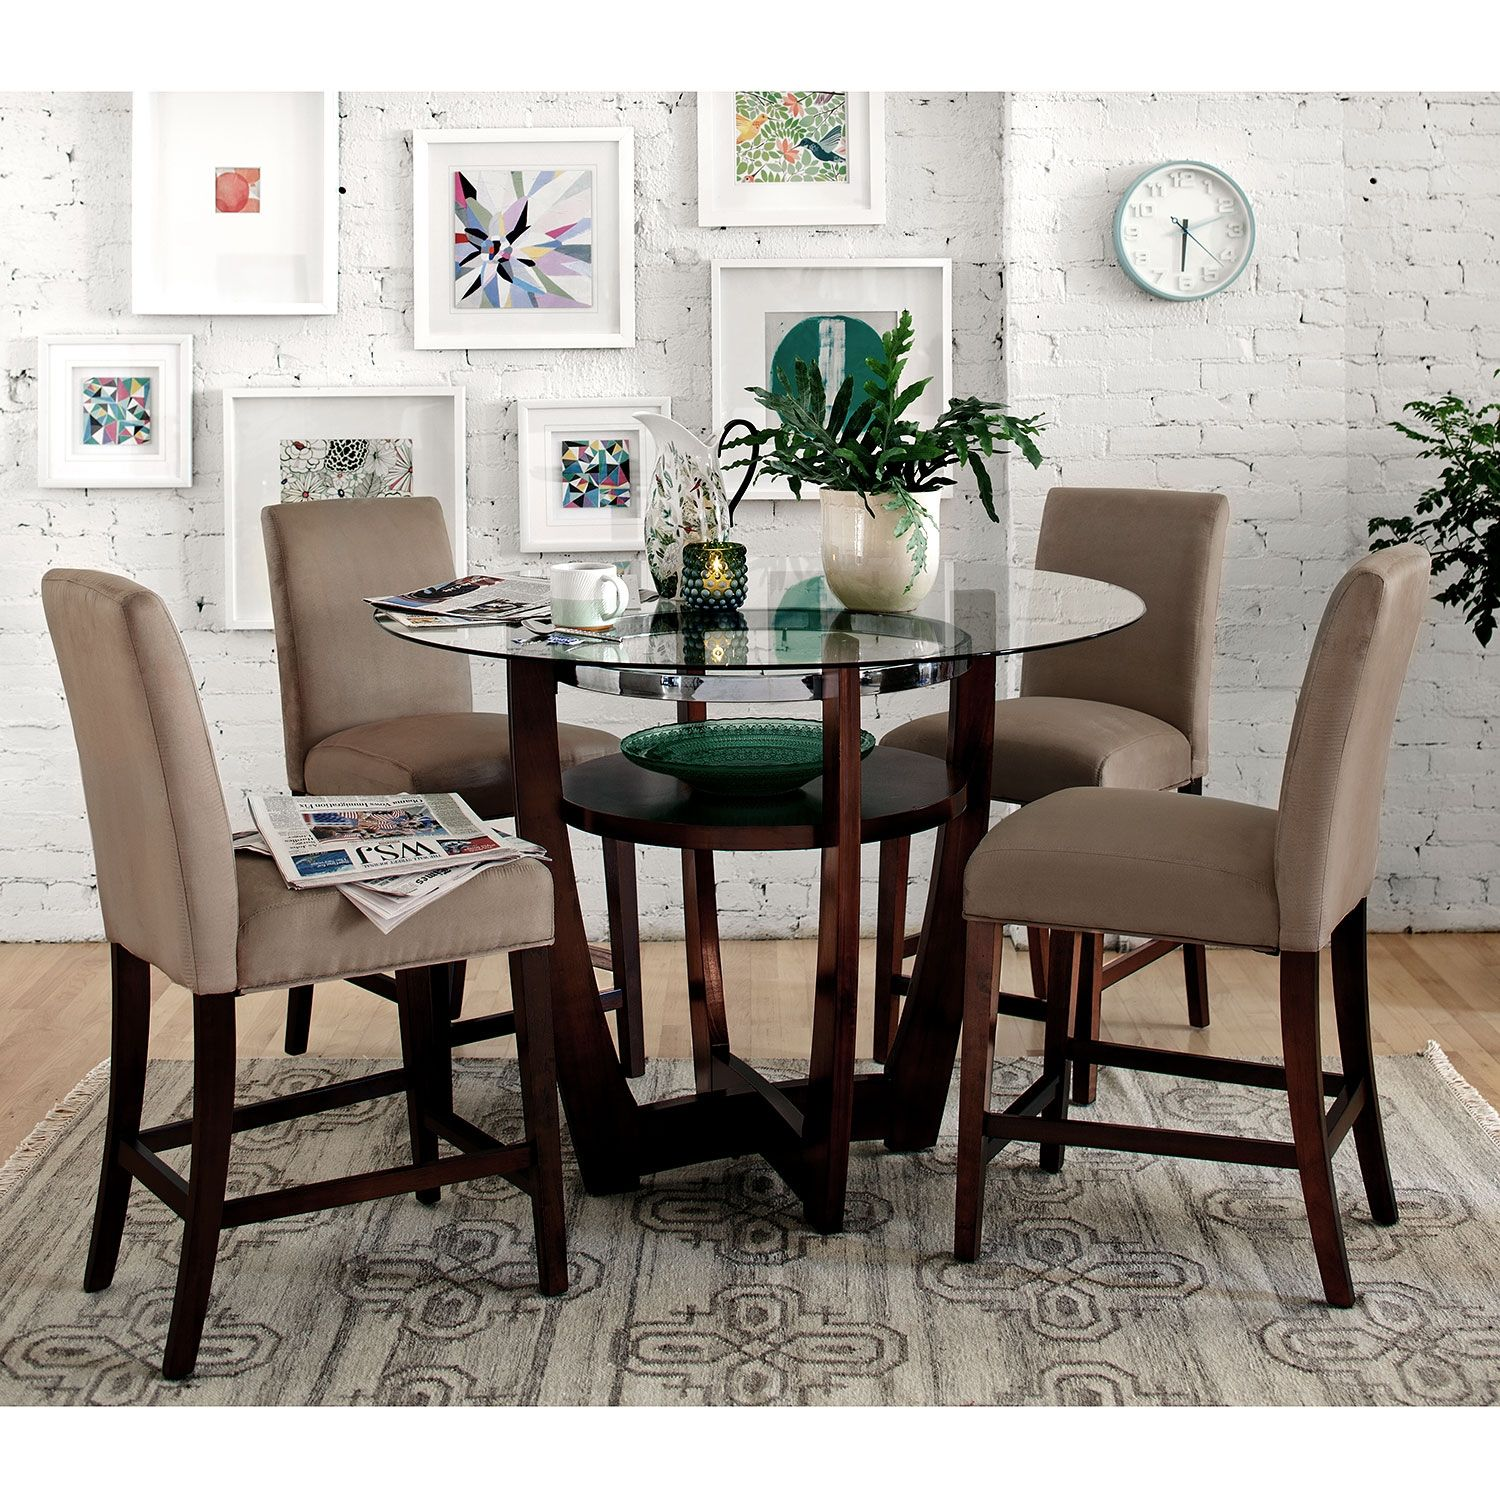 Alcove Beige Ii 5 Pc Dinette Beige Dining Room Counter Height Table Value City Furniture